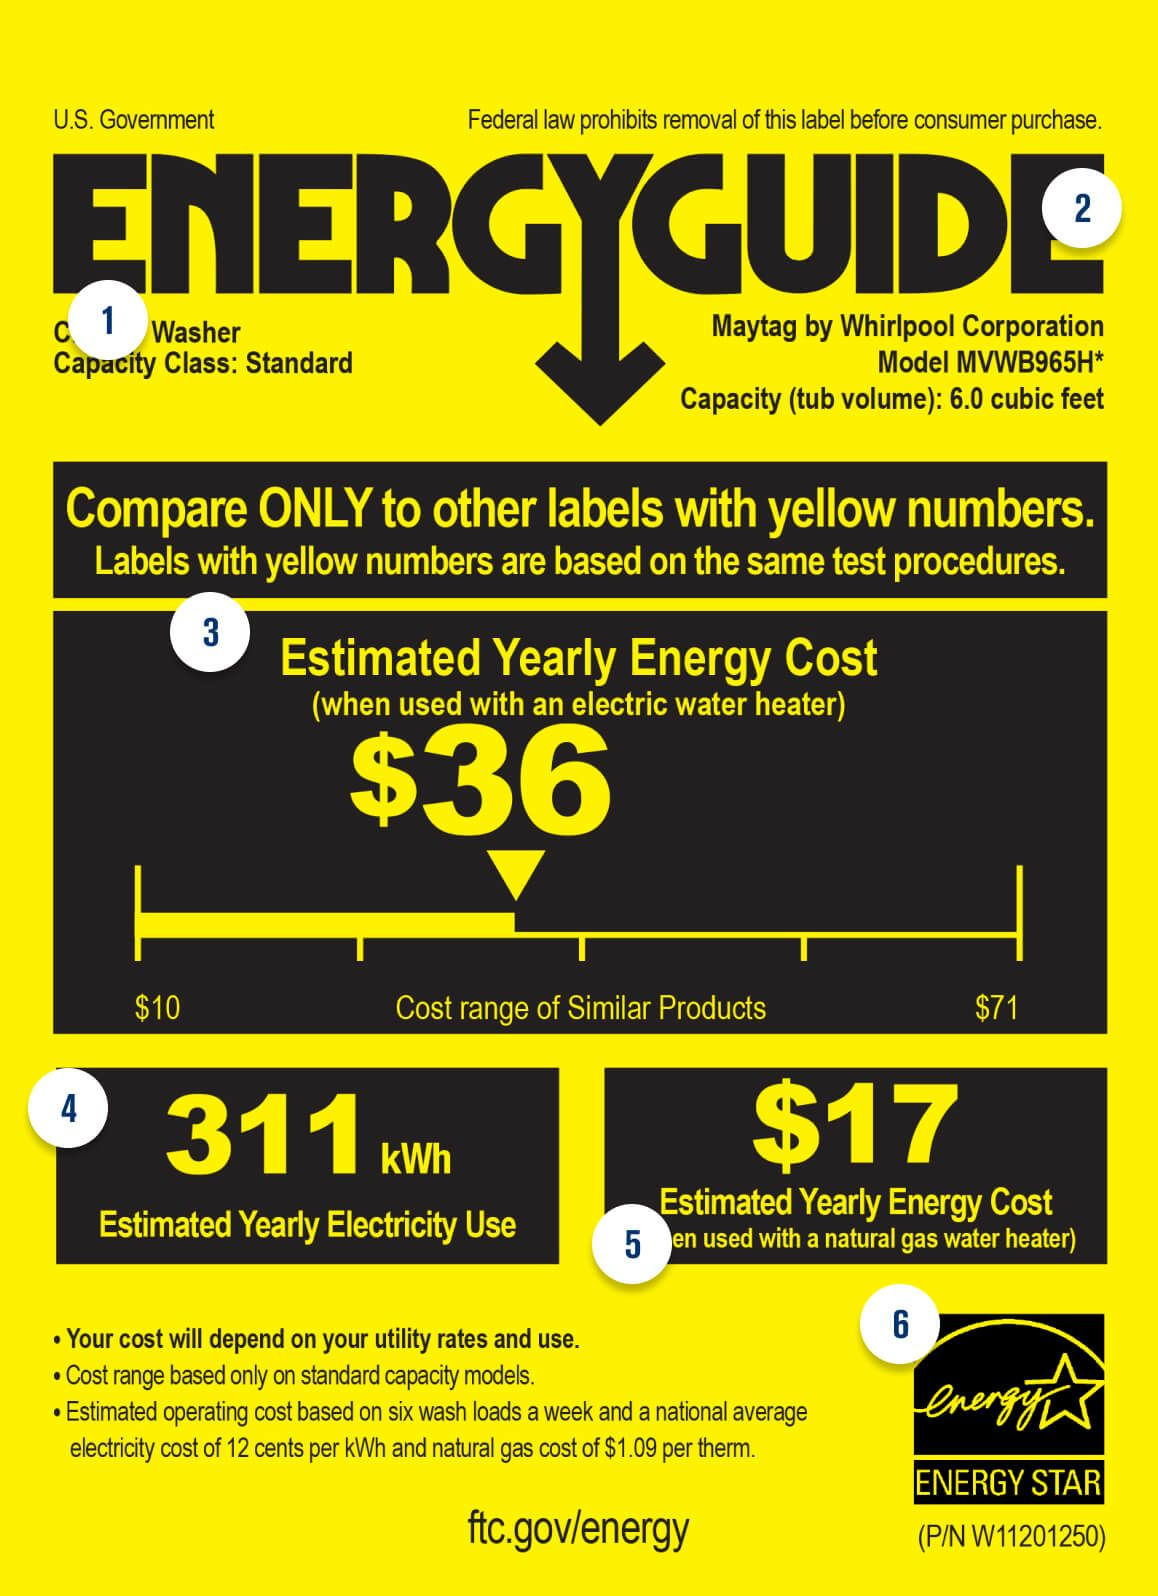 Energy Guide Label Infographic